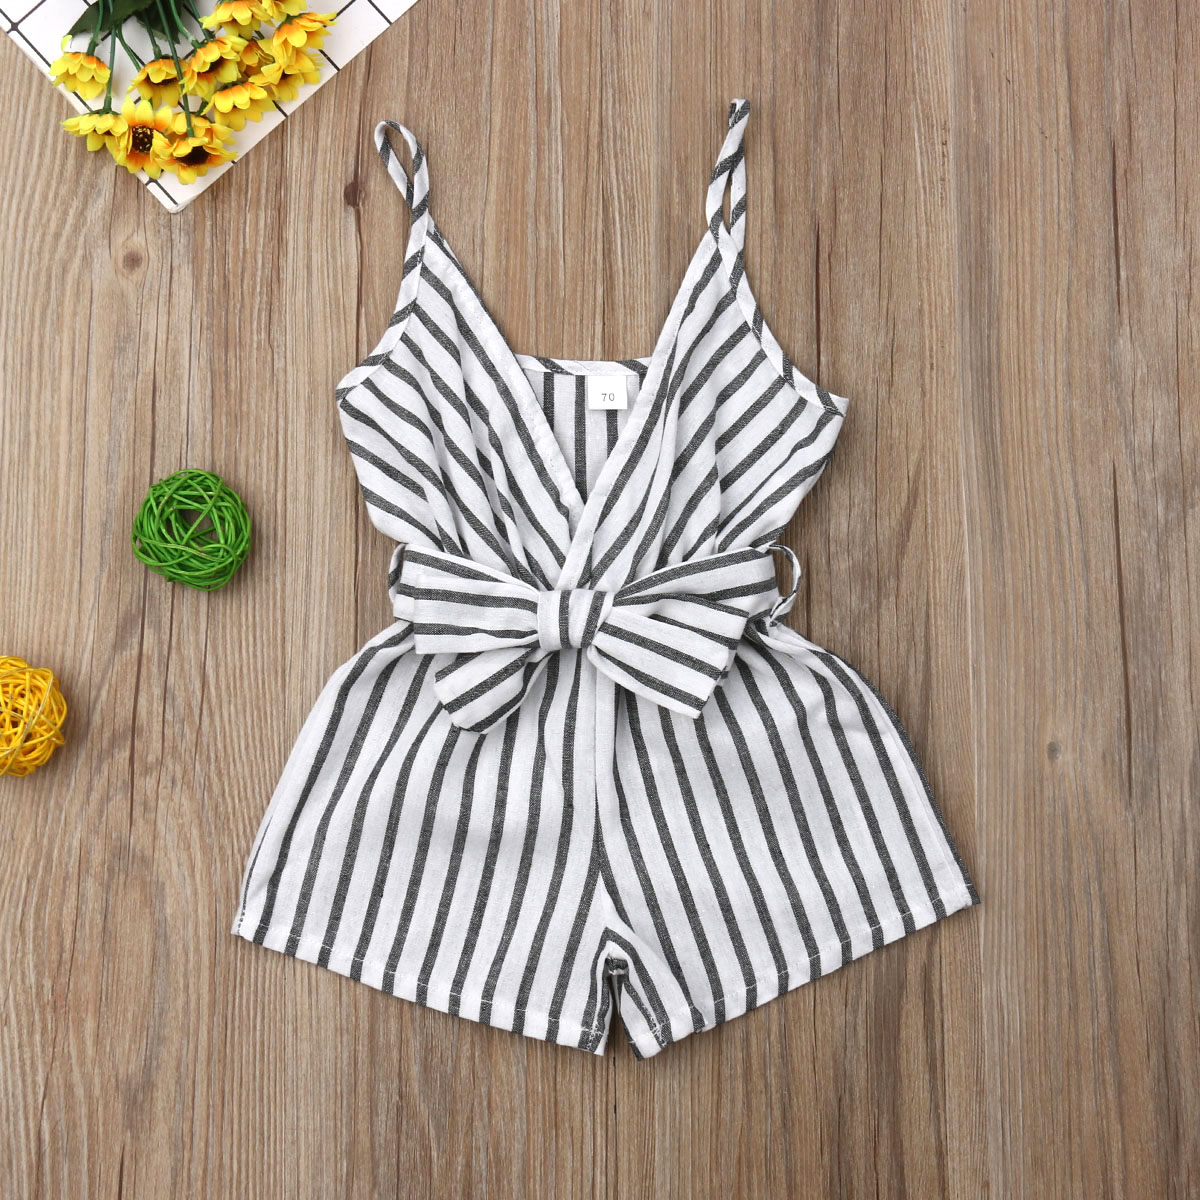 Emmababy Summer Newborn Baby Girl Clothes Sleeveless Striped Bowknot Strap Romper Jumpsuit One-Piece Outfit Sunsuit Clothes